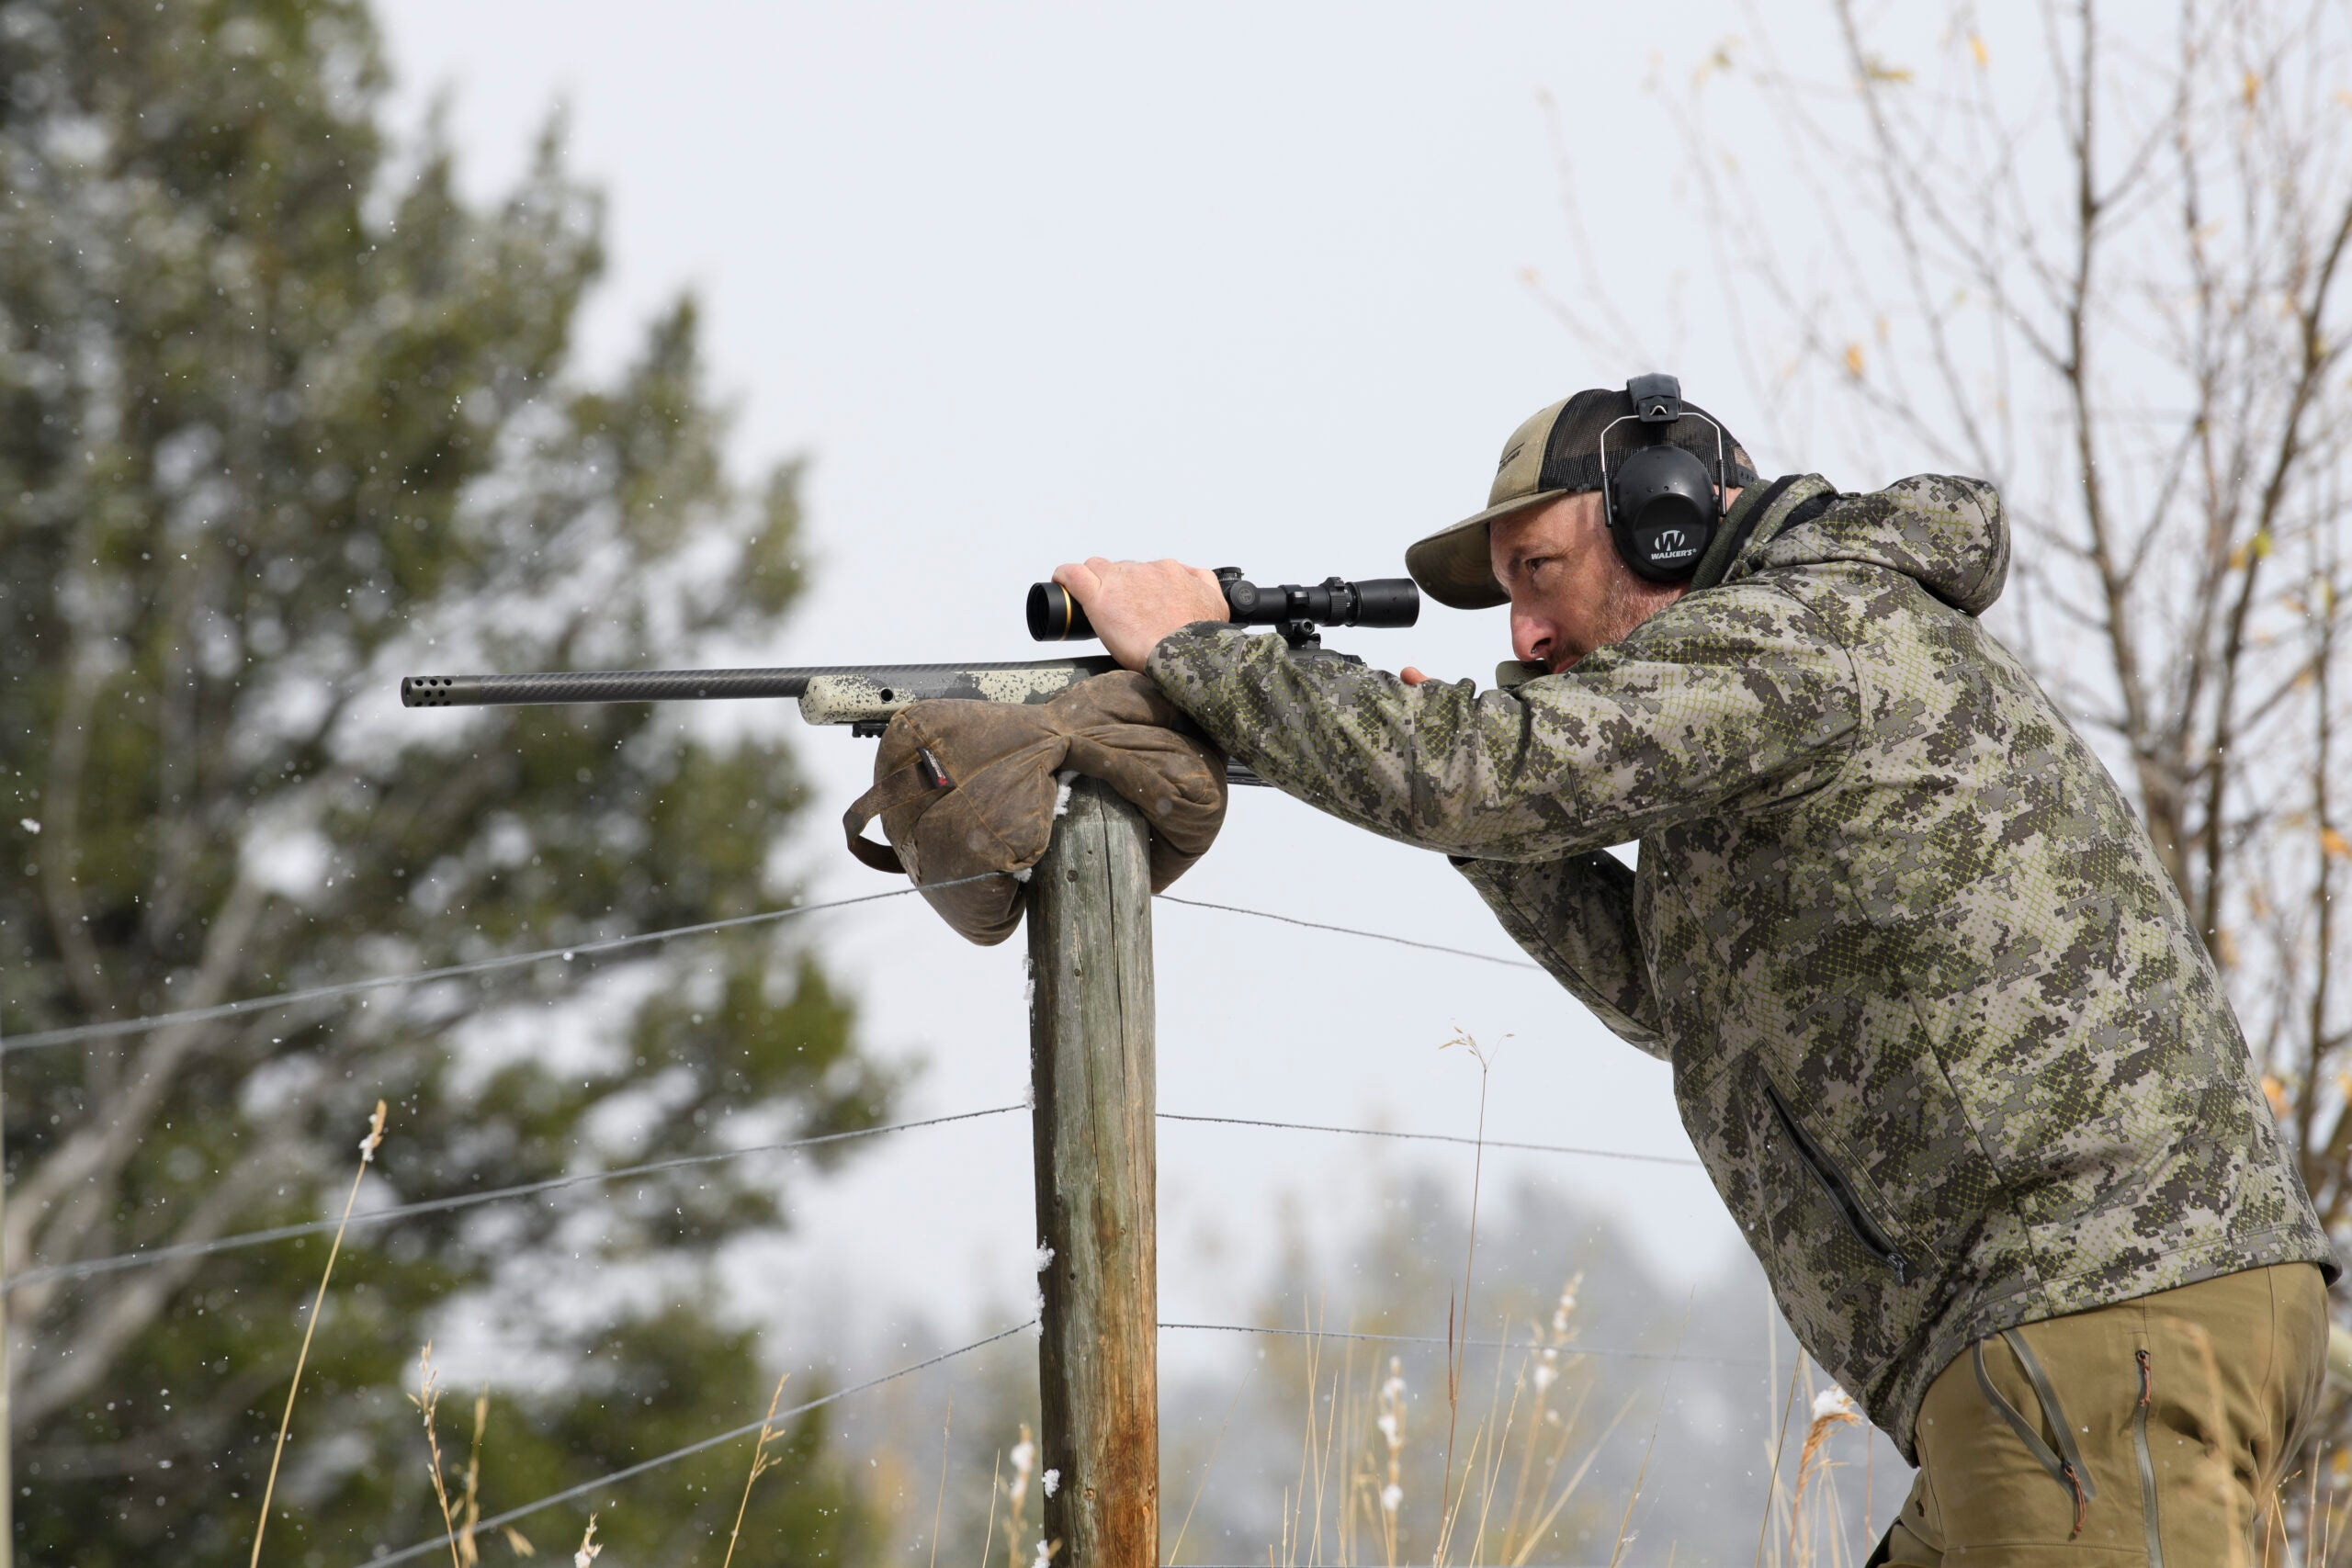 A Western hunter readies himself for a shot behind his bolt-action rifle, which is resting on a fence post.